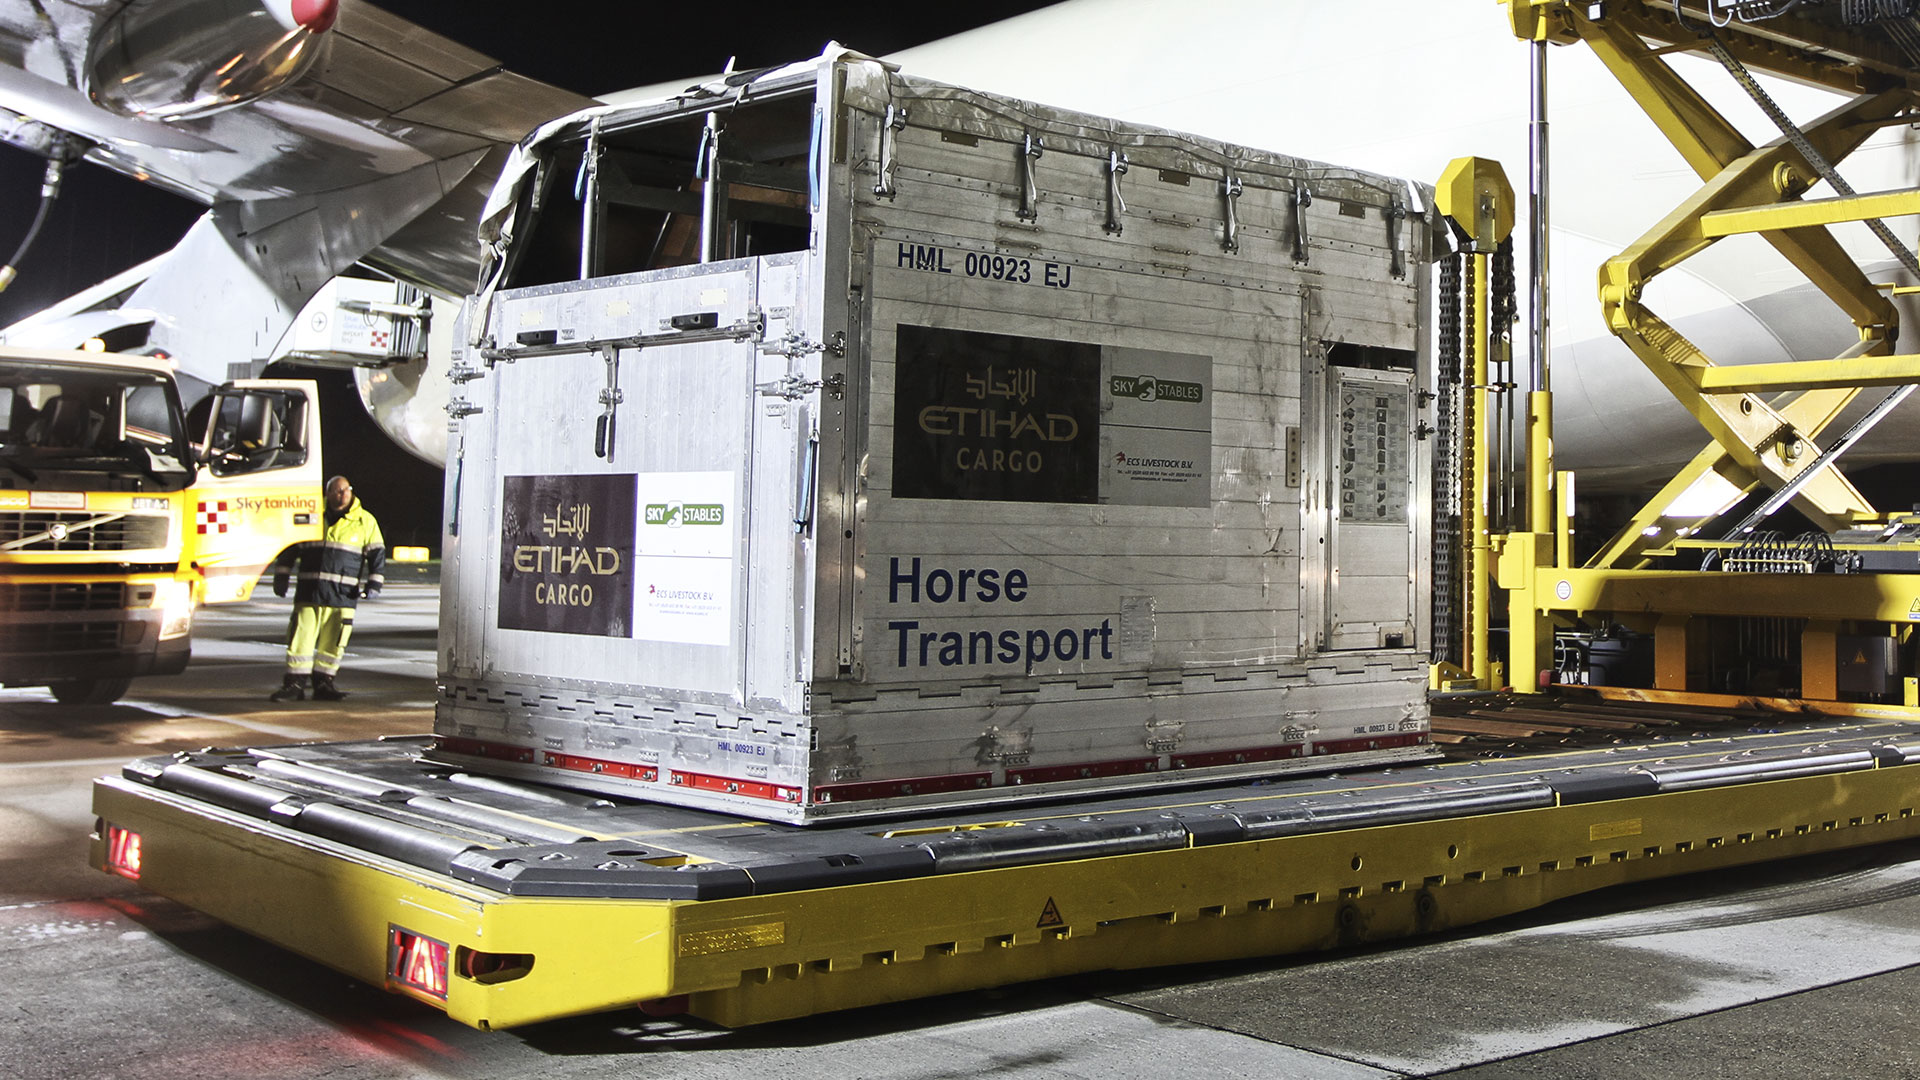 Horse airfreight transport box